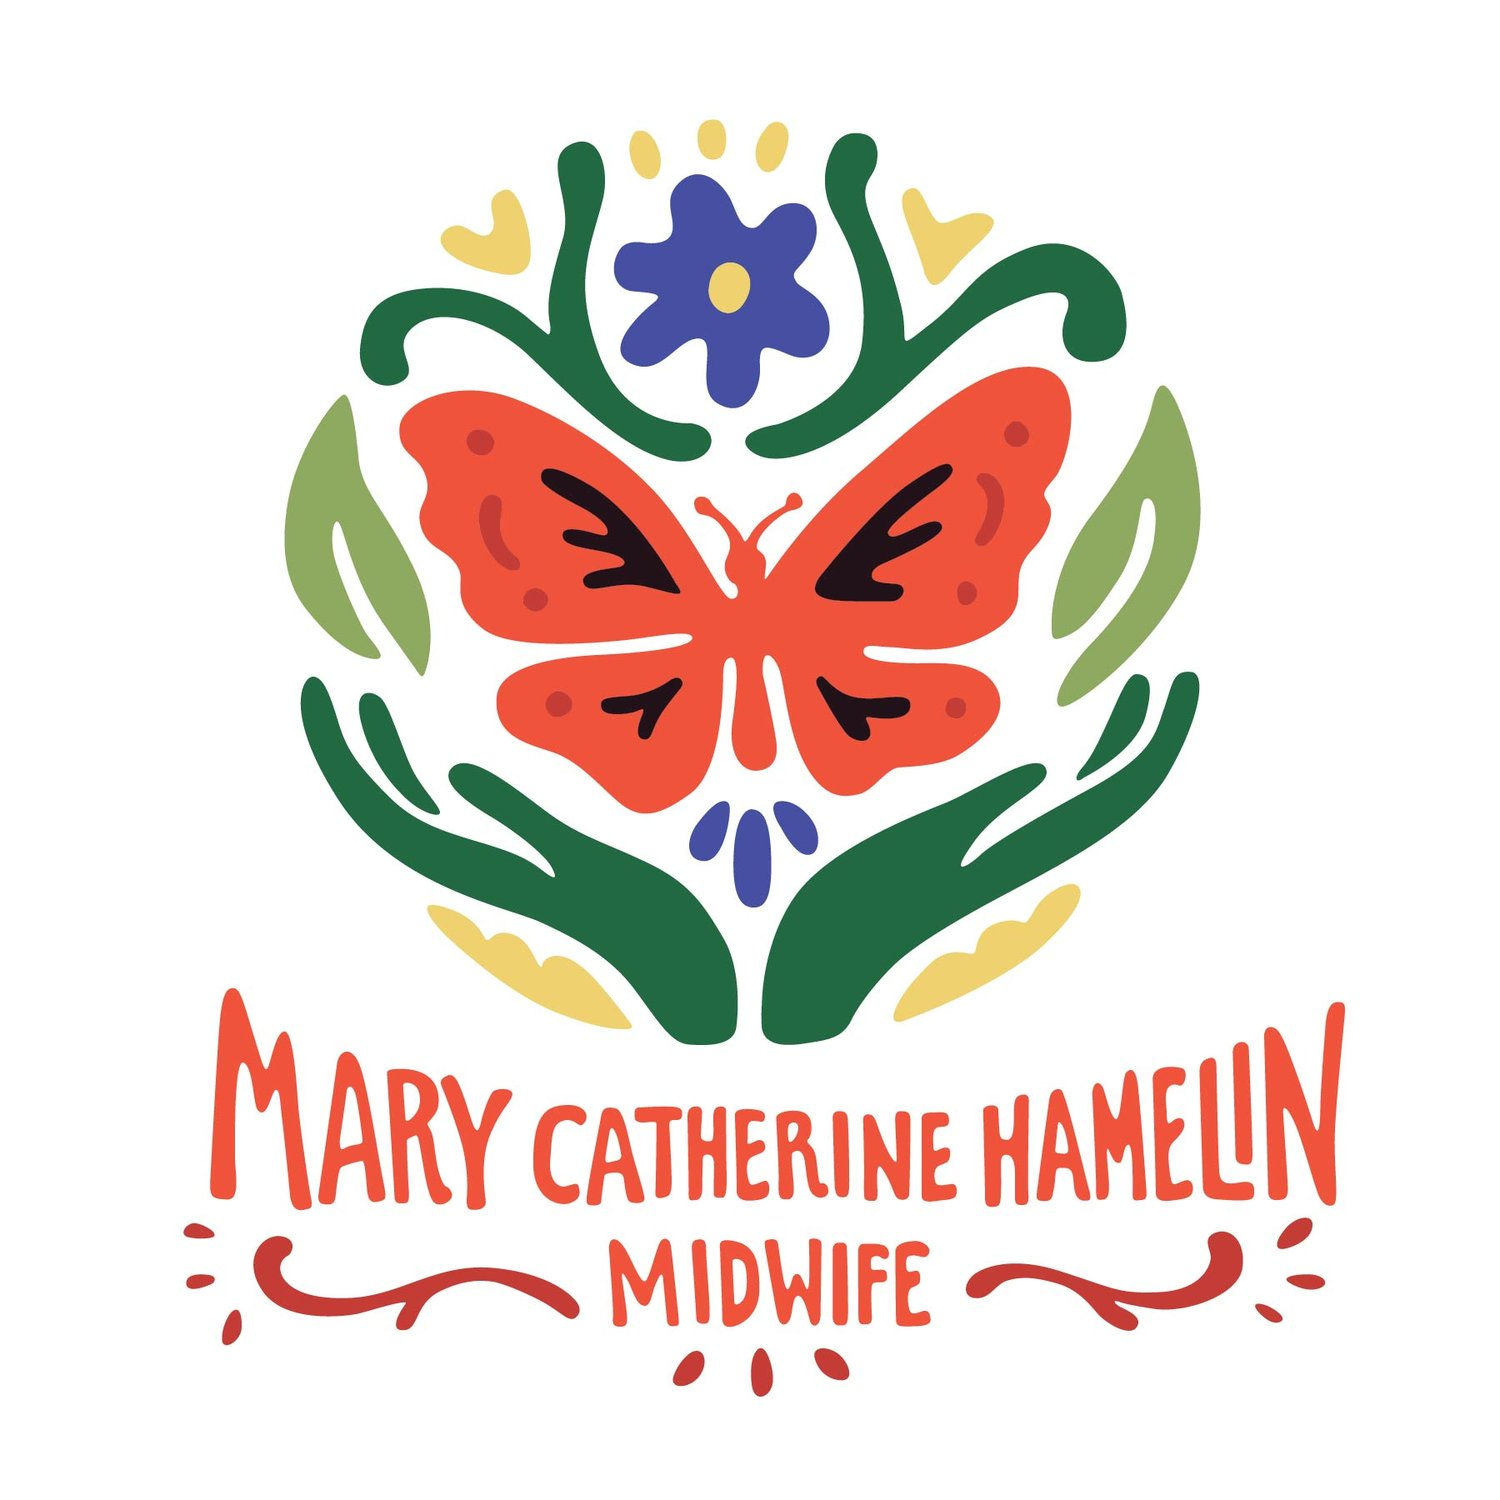 Mary Catherine Hamelin